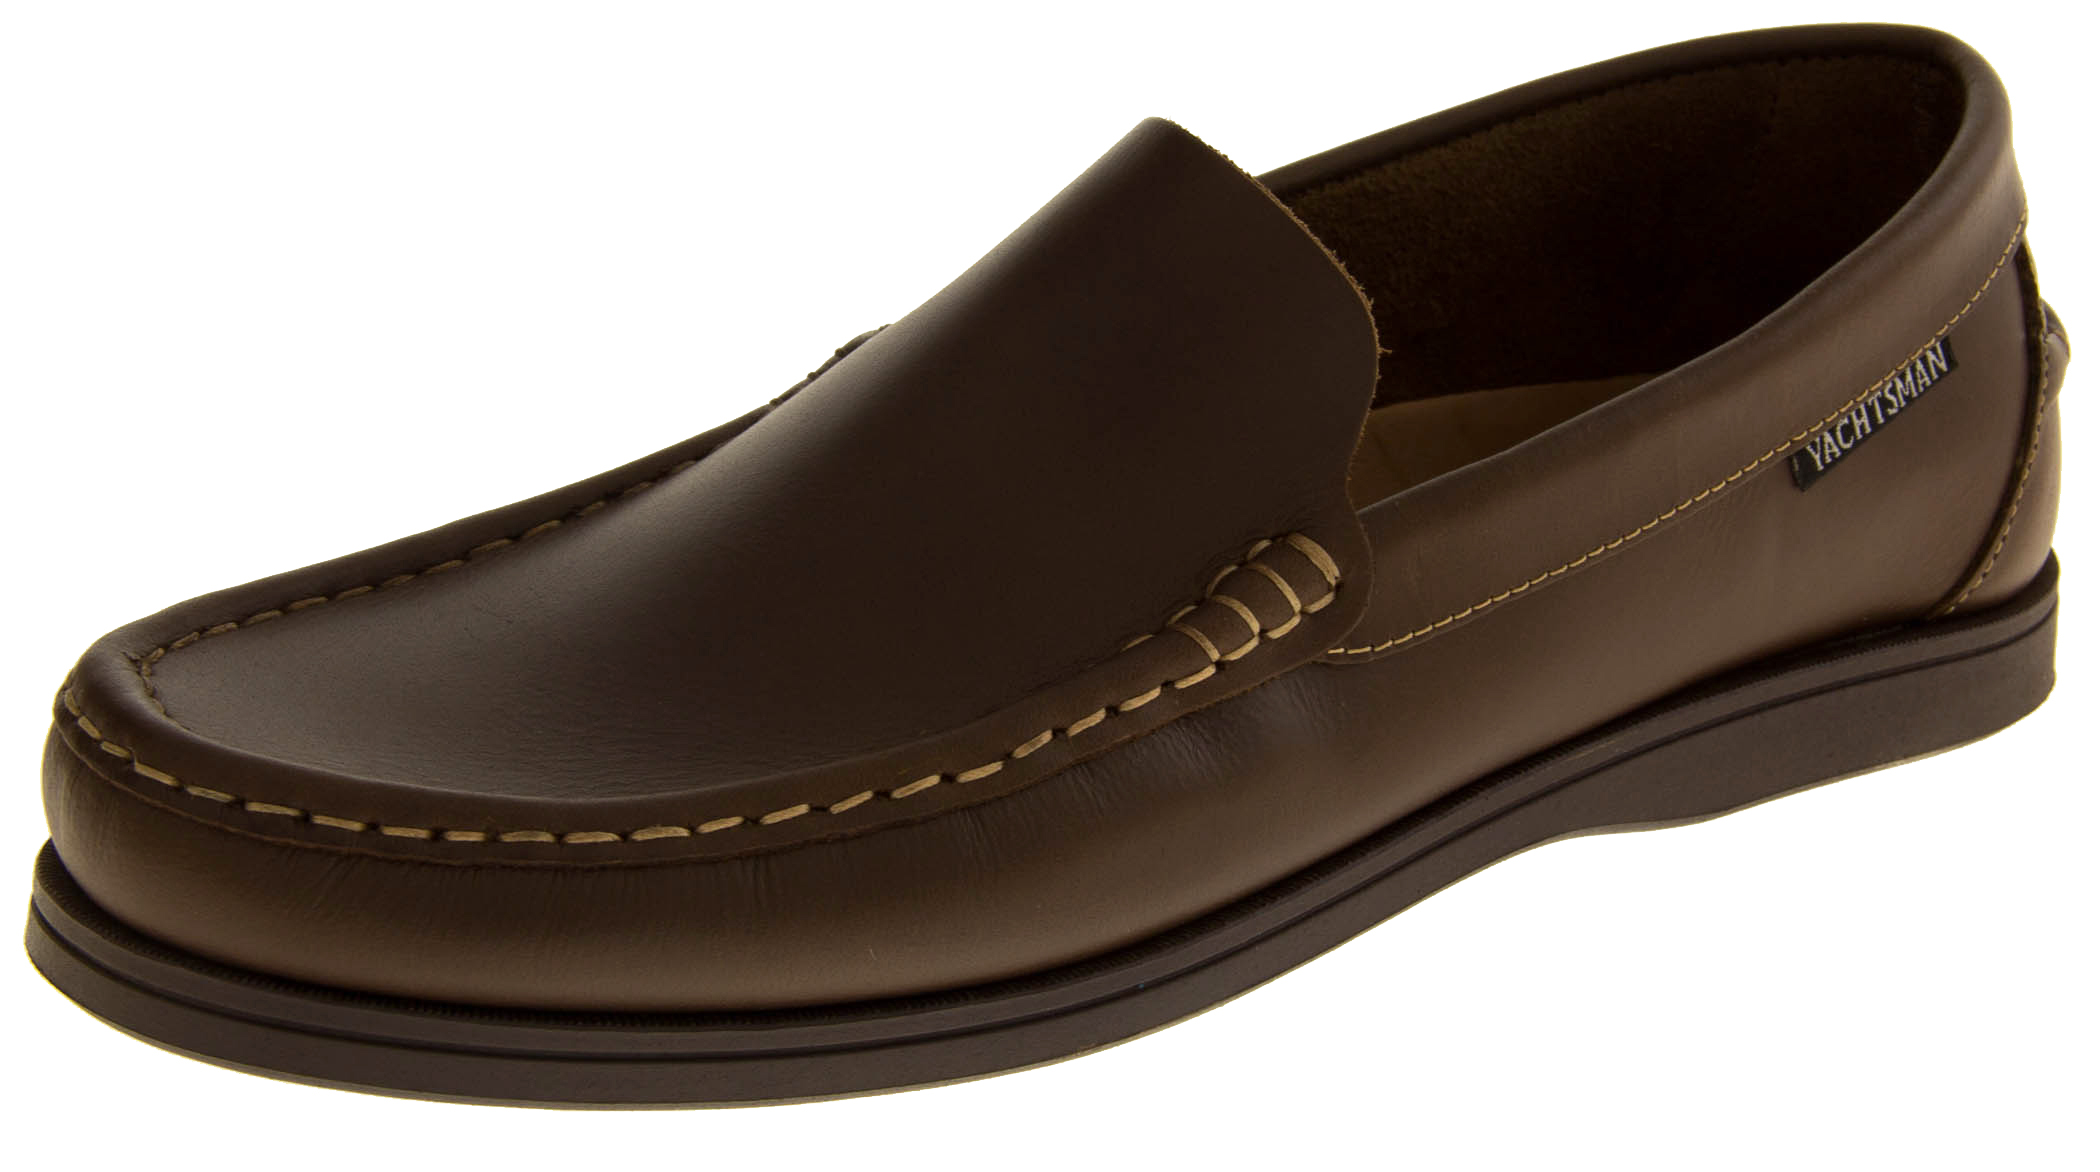 57965c73a59 Mens YACHTSMAN Leather Slip On Moccasin Deck Shoes